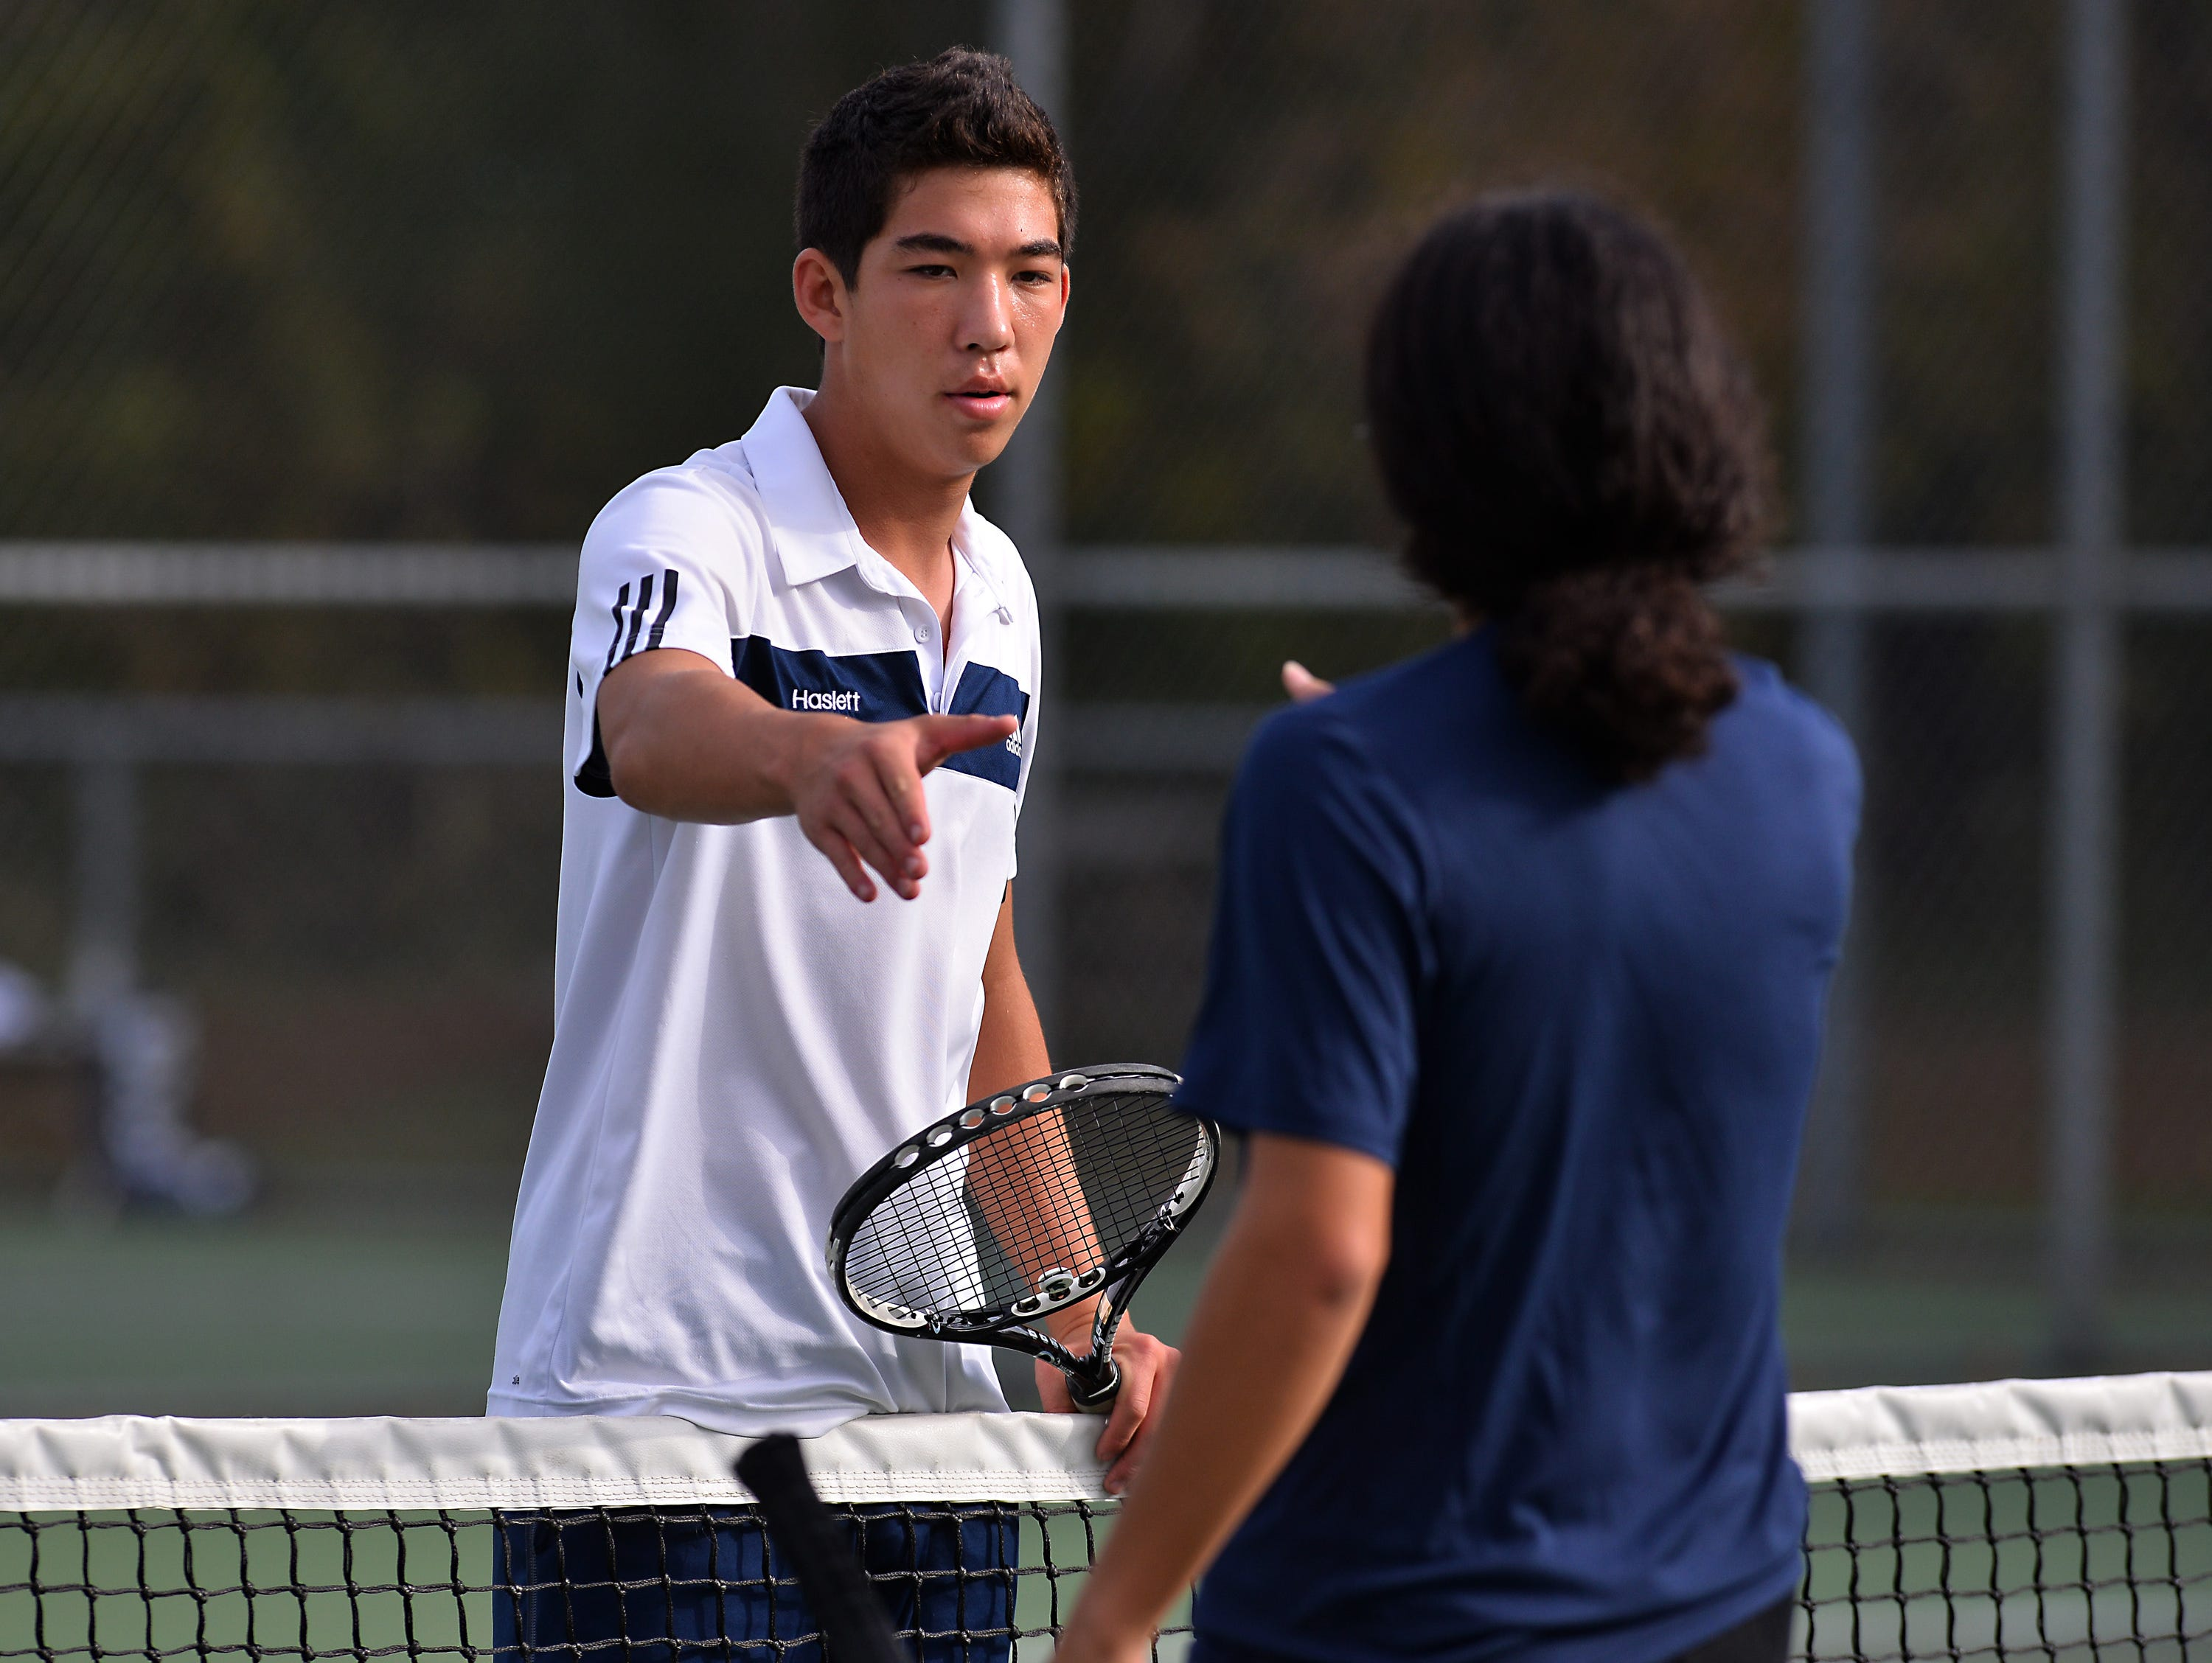 Haslett's Nate Choi left, and Eastern's Jonathan Hudy-Velasco, right, shake hands at the net Thursday 10/8/2015 after Choi won their match in early action of tennis regionals.